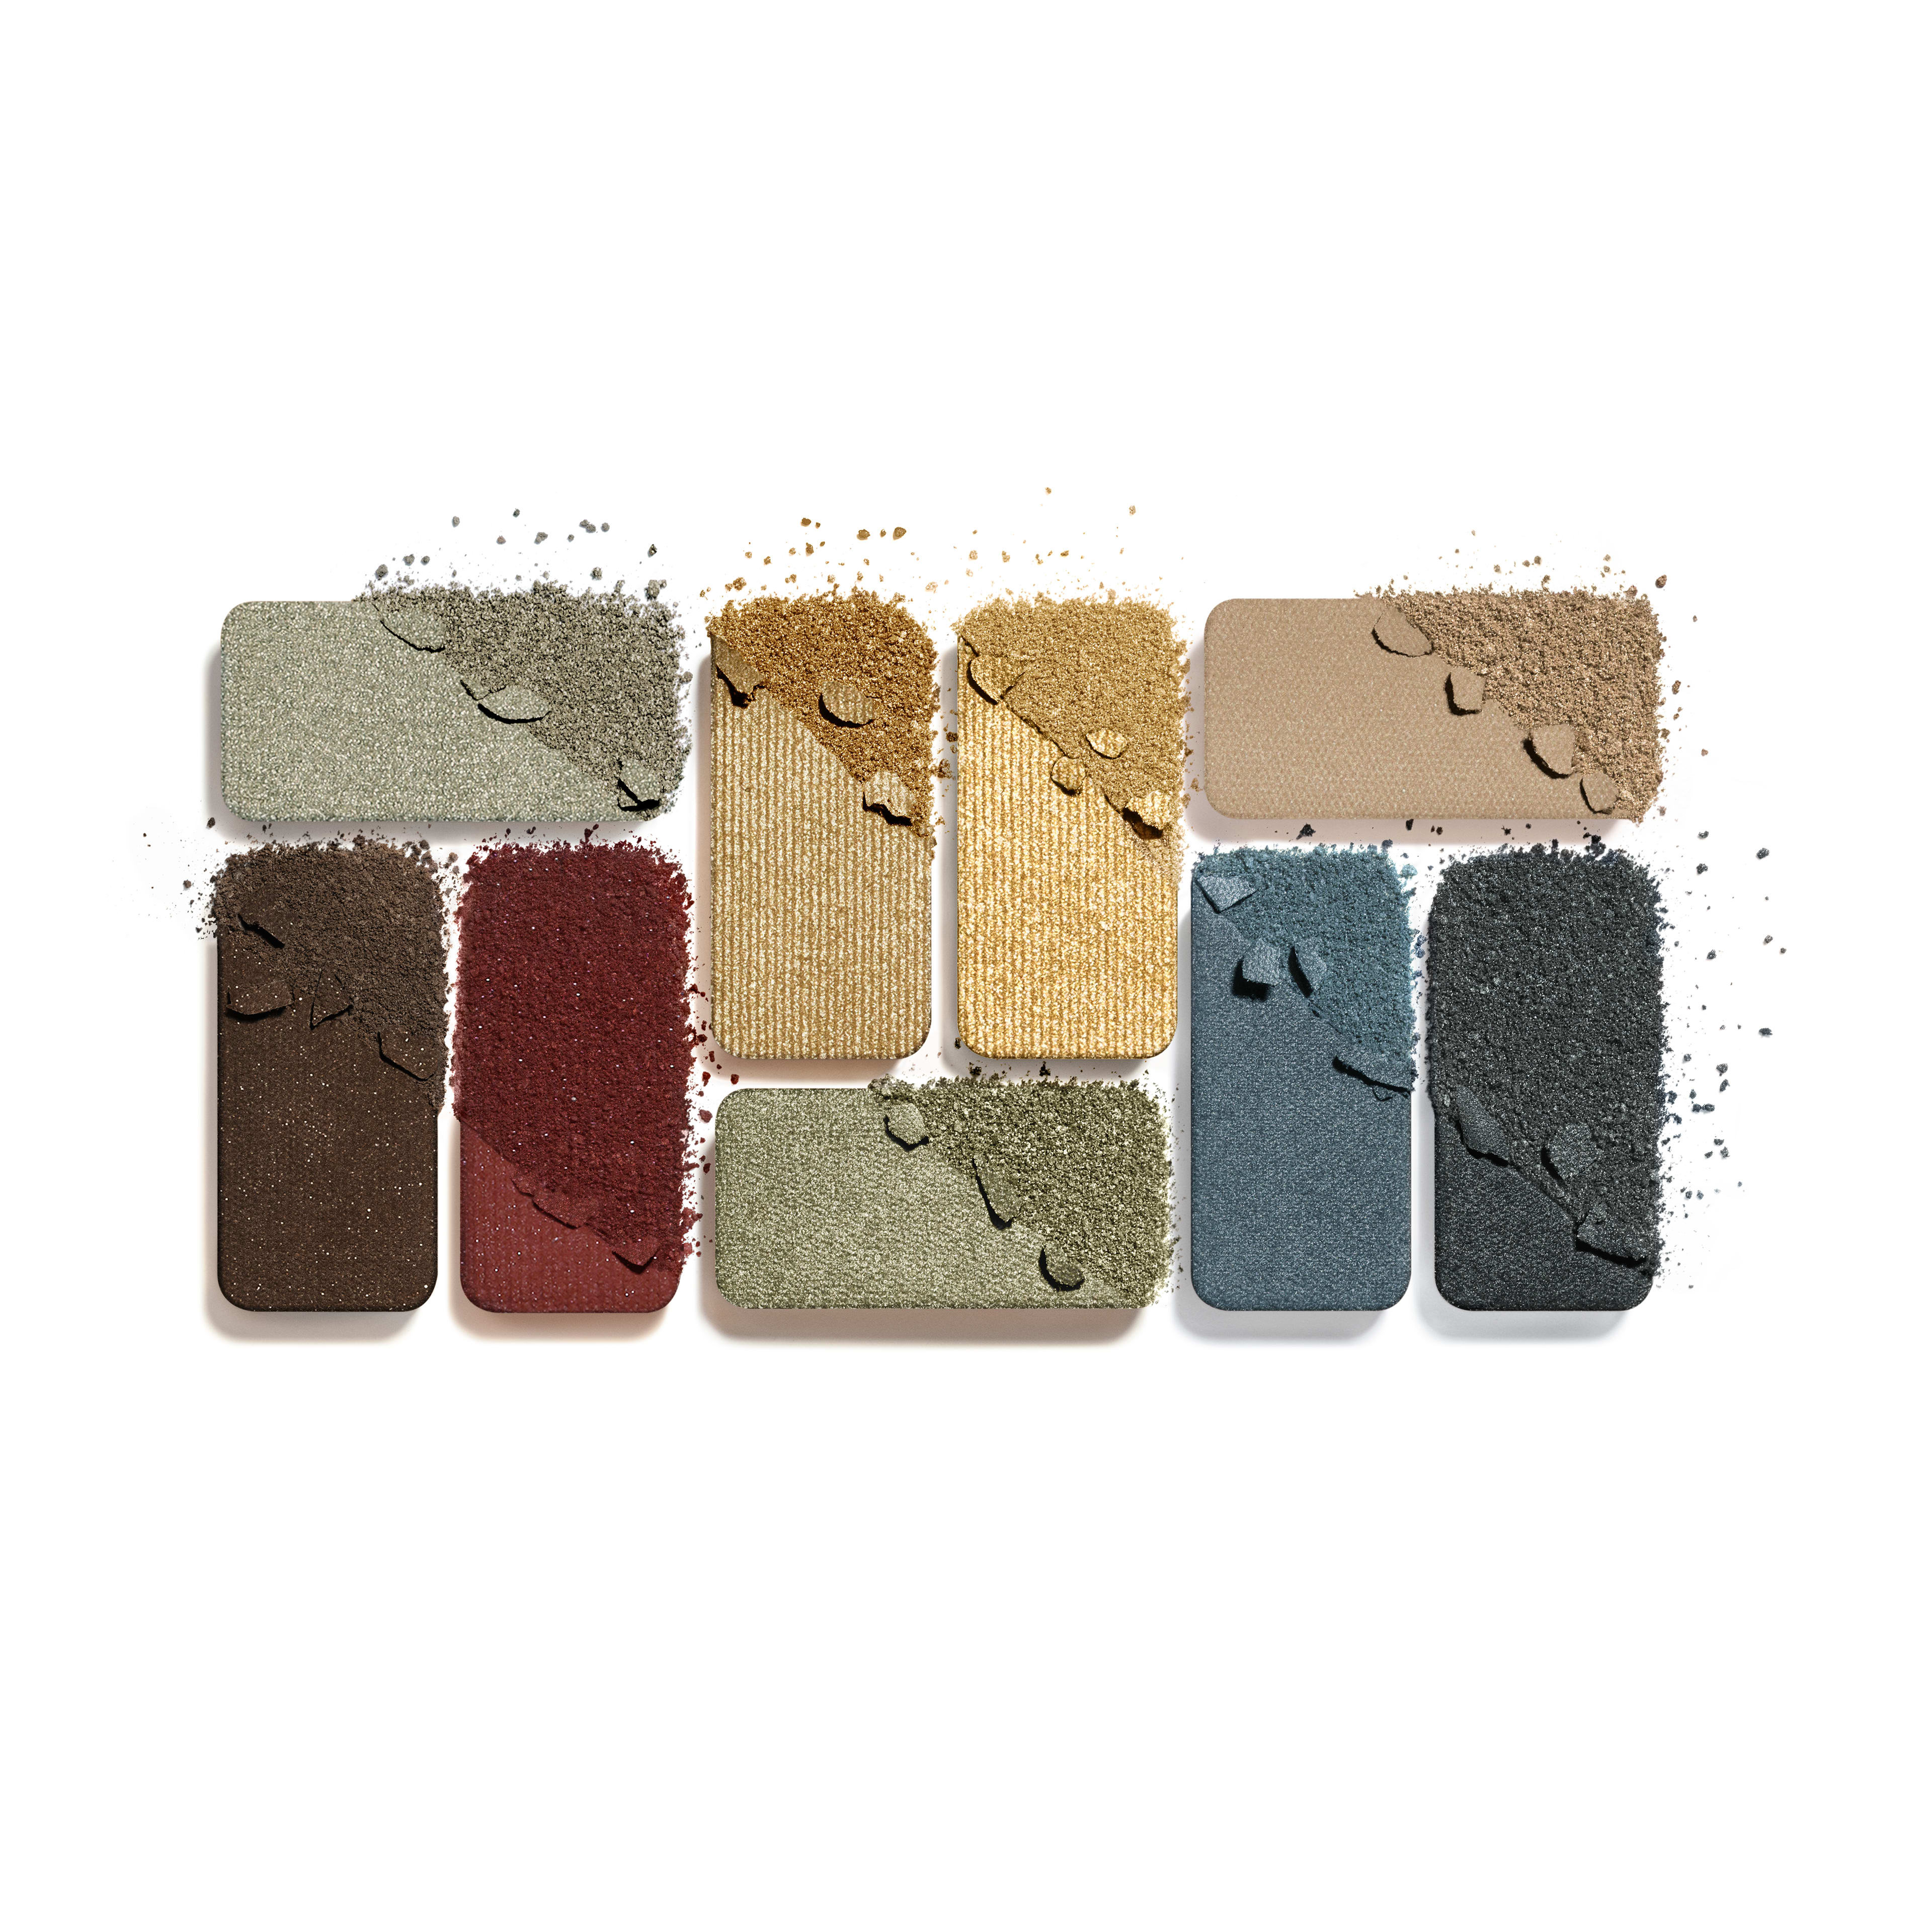 LES 9 OMBRES - makeup - 0.22OZ. - Basic texture view